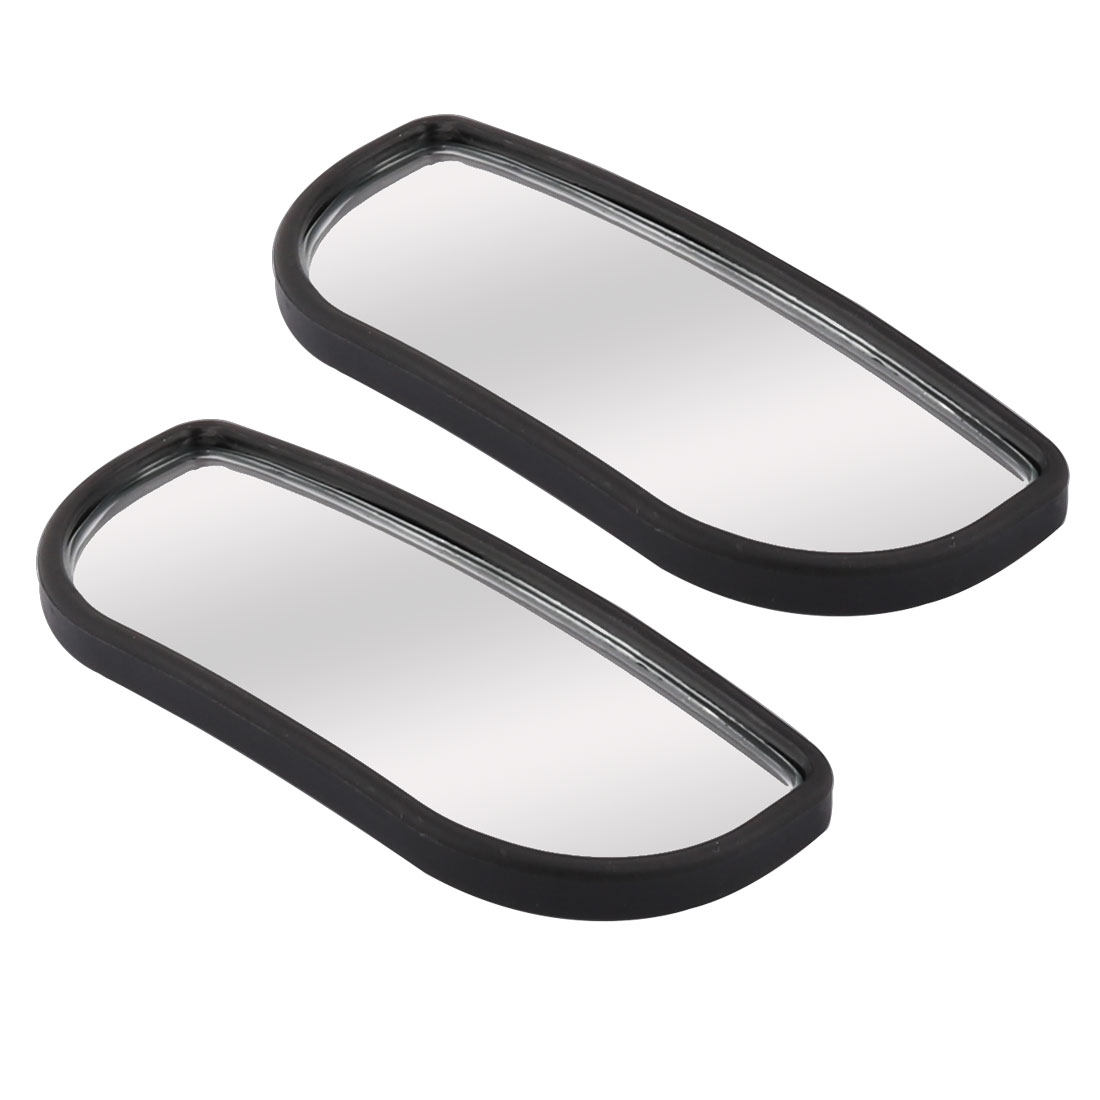 8 x 3cm Plastic Frame Adjustable Rearview Dead Angle Car Blind Spot Mirror Pair